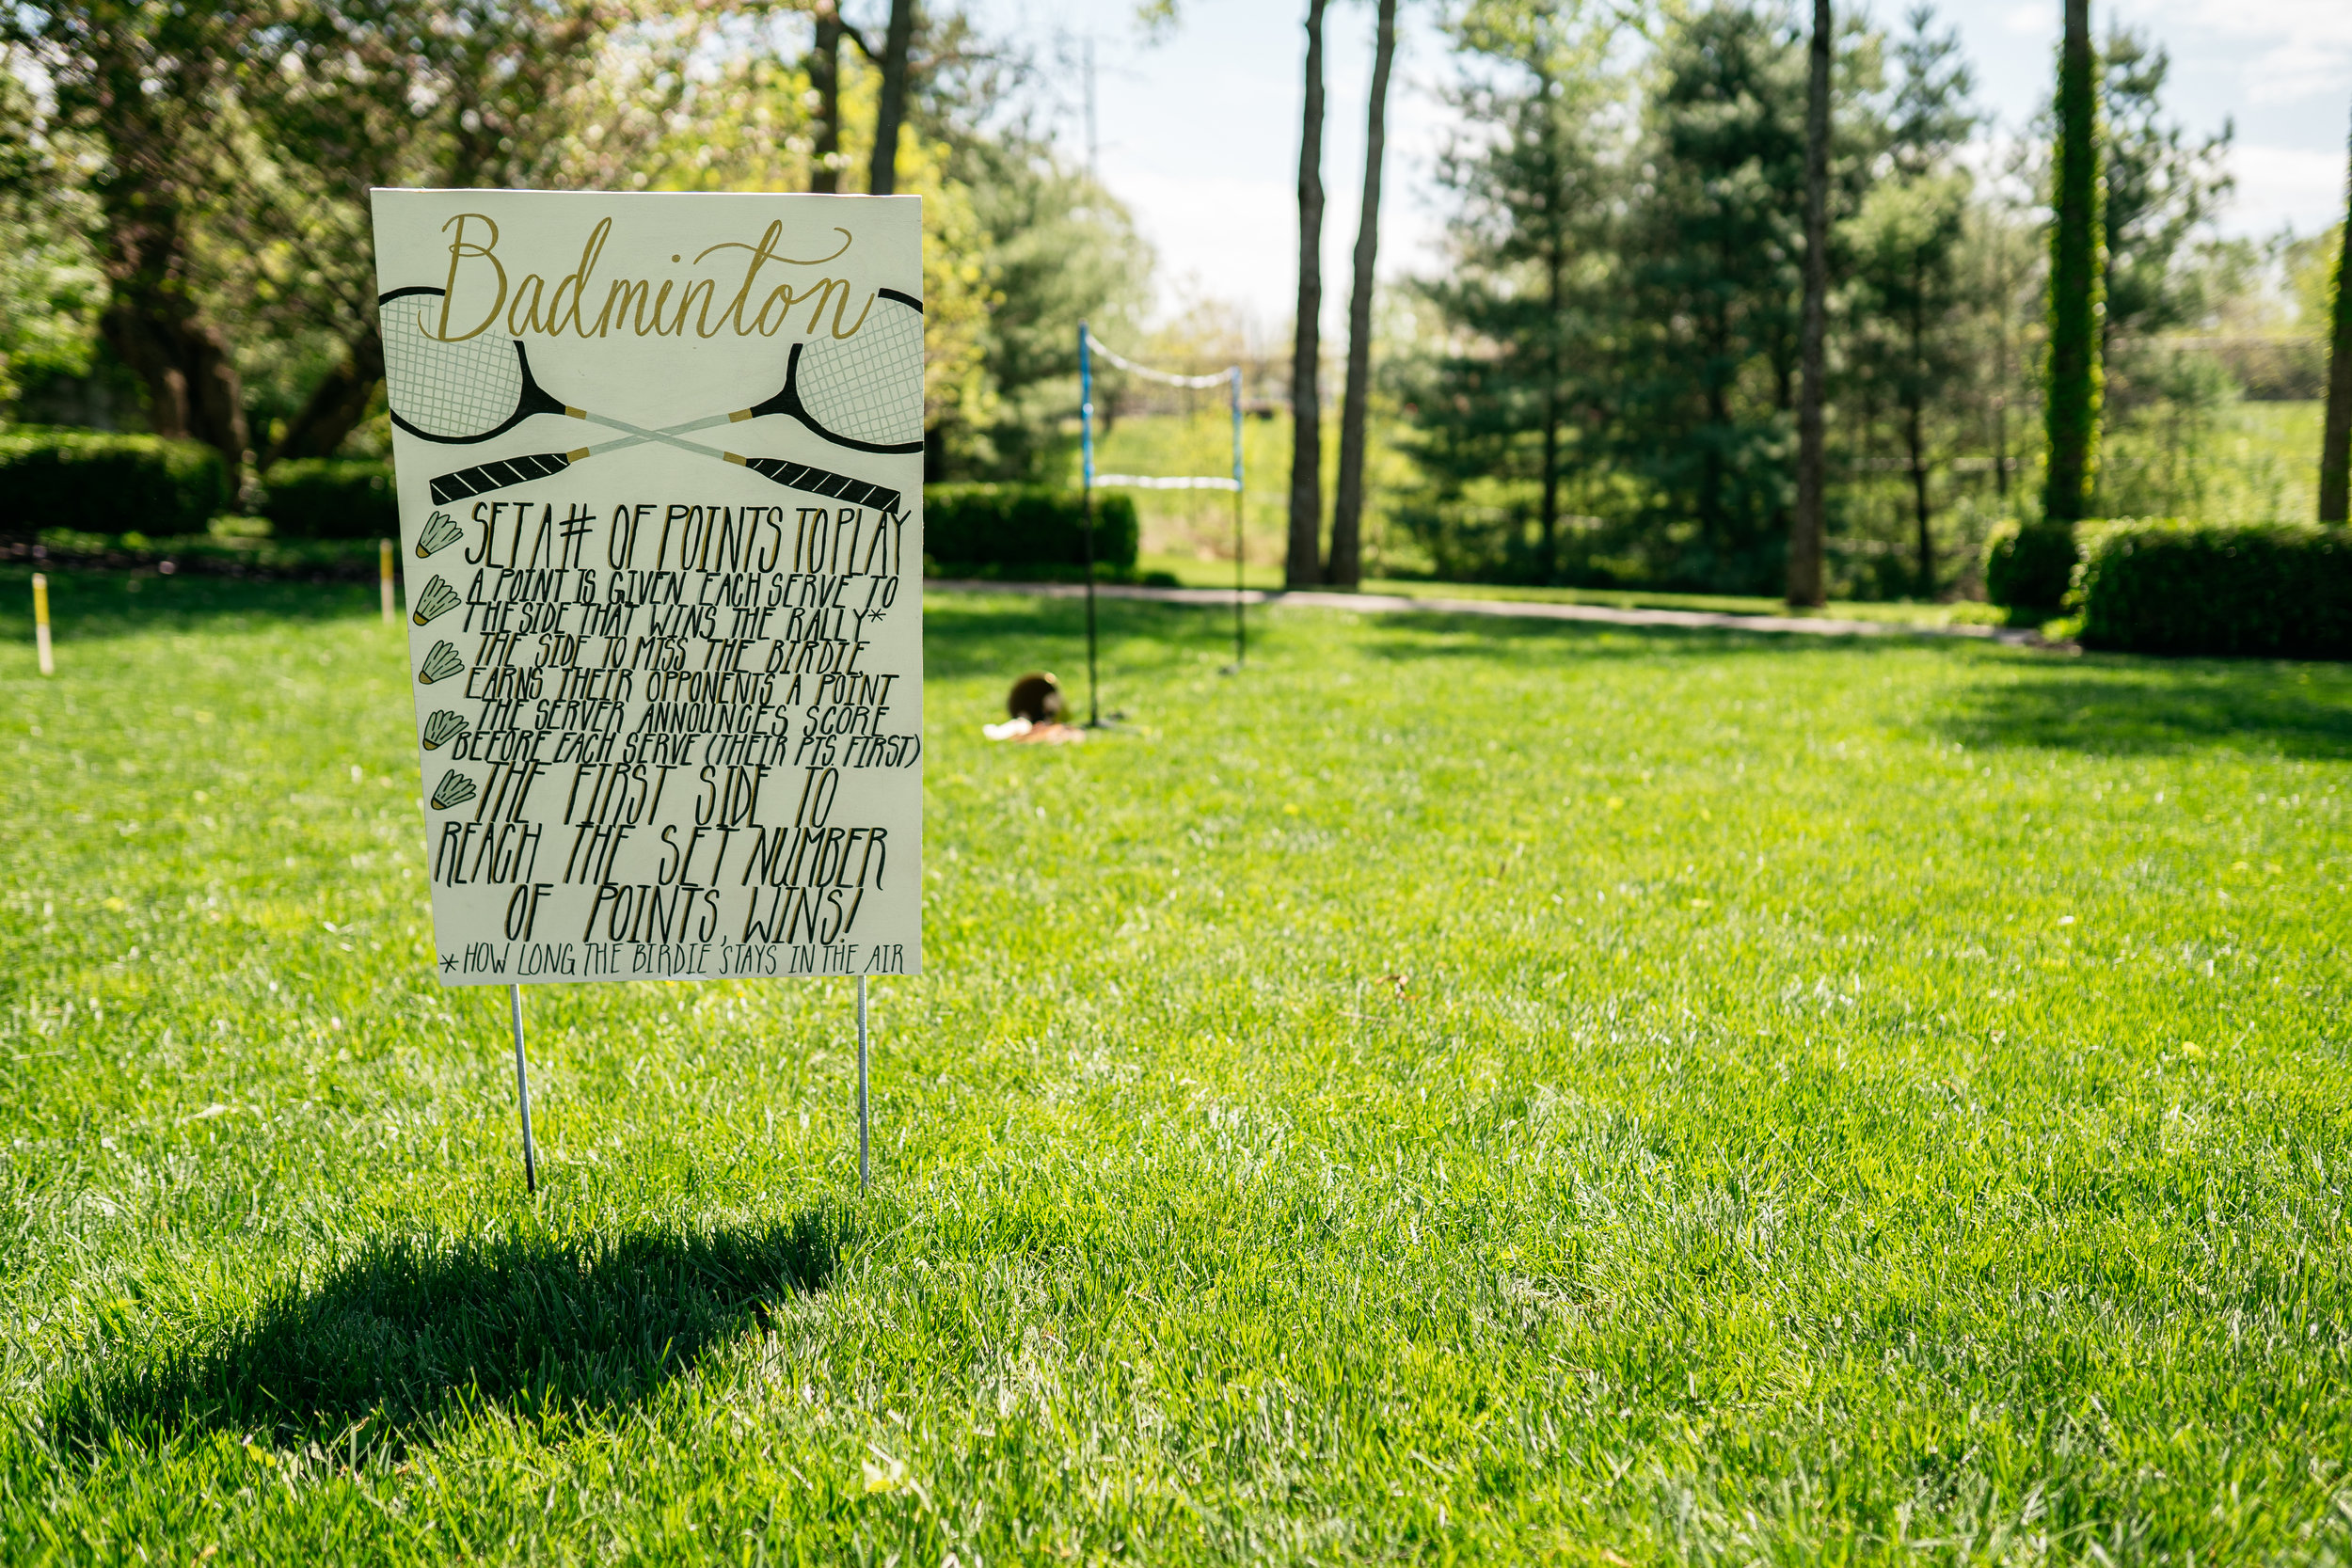 The couple incorporated their favorite lawn games into their garden party inspired wedding at Haseltine Estate. After their first dance and speeches, they made their way to play a game! Don't leave the fun just for your guests on your wedding day!